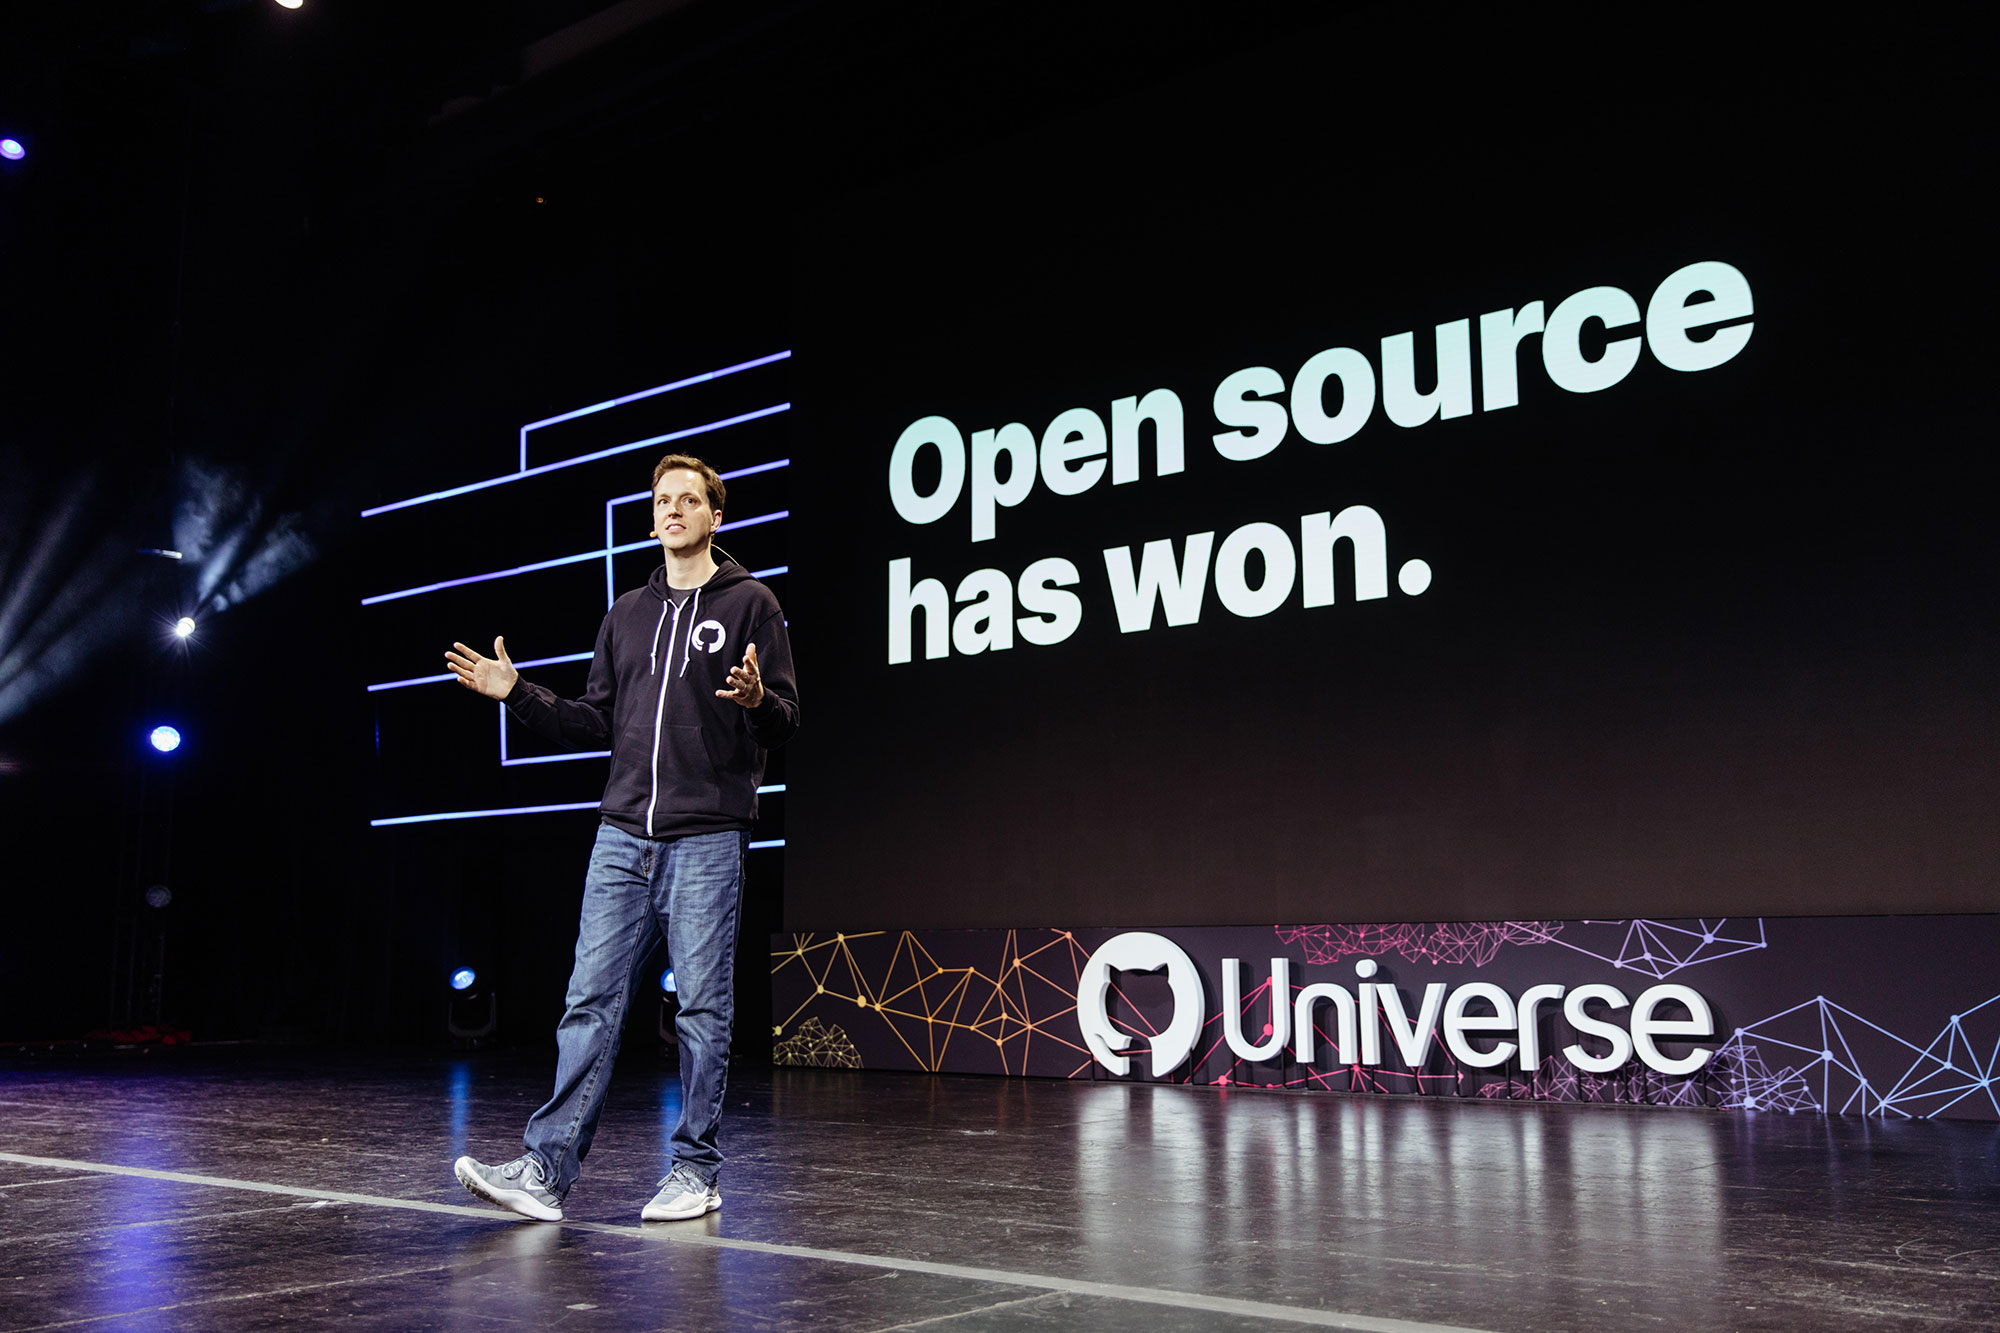 Nat Friedman - Open source has won